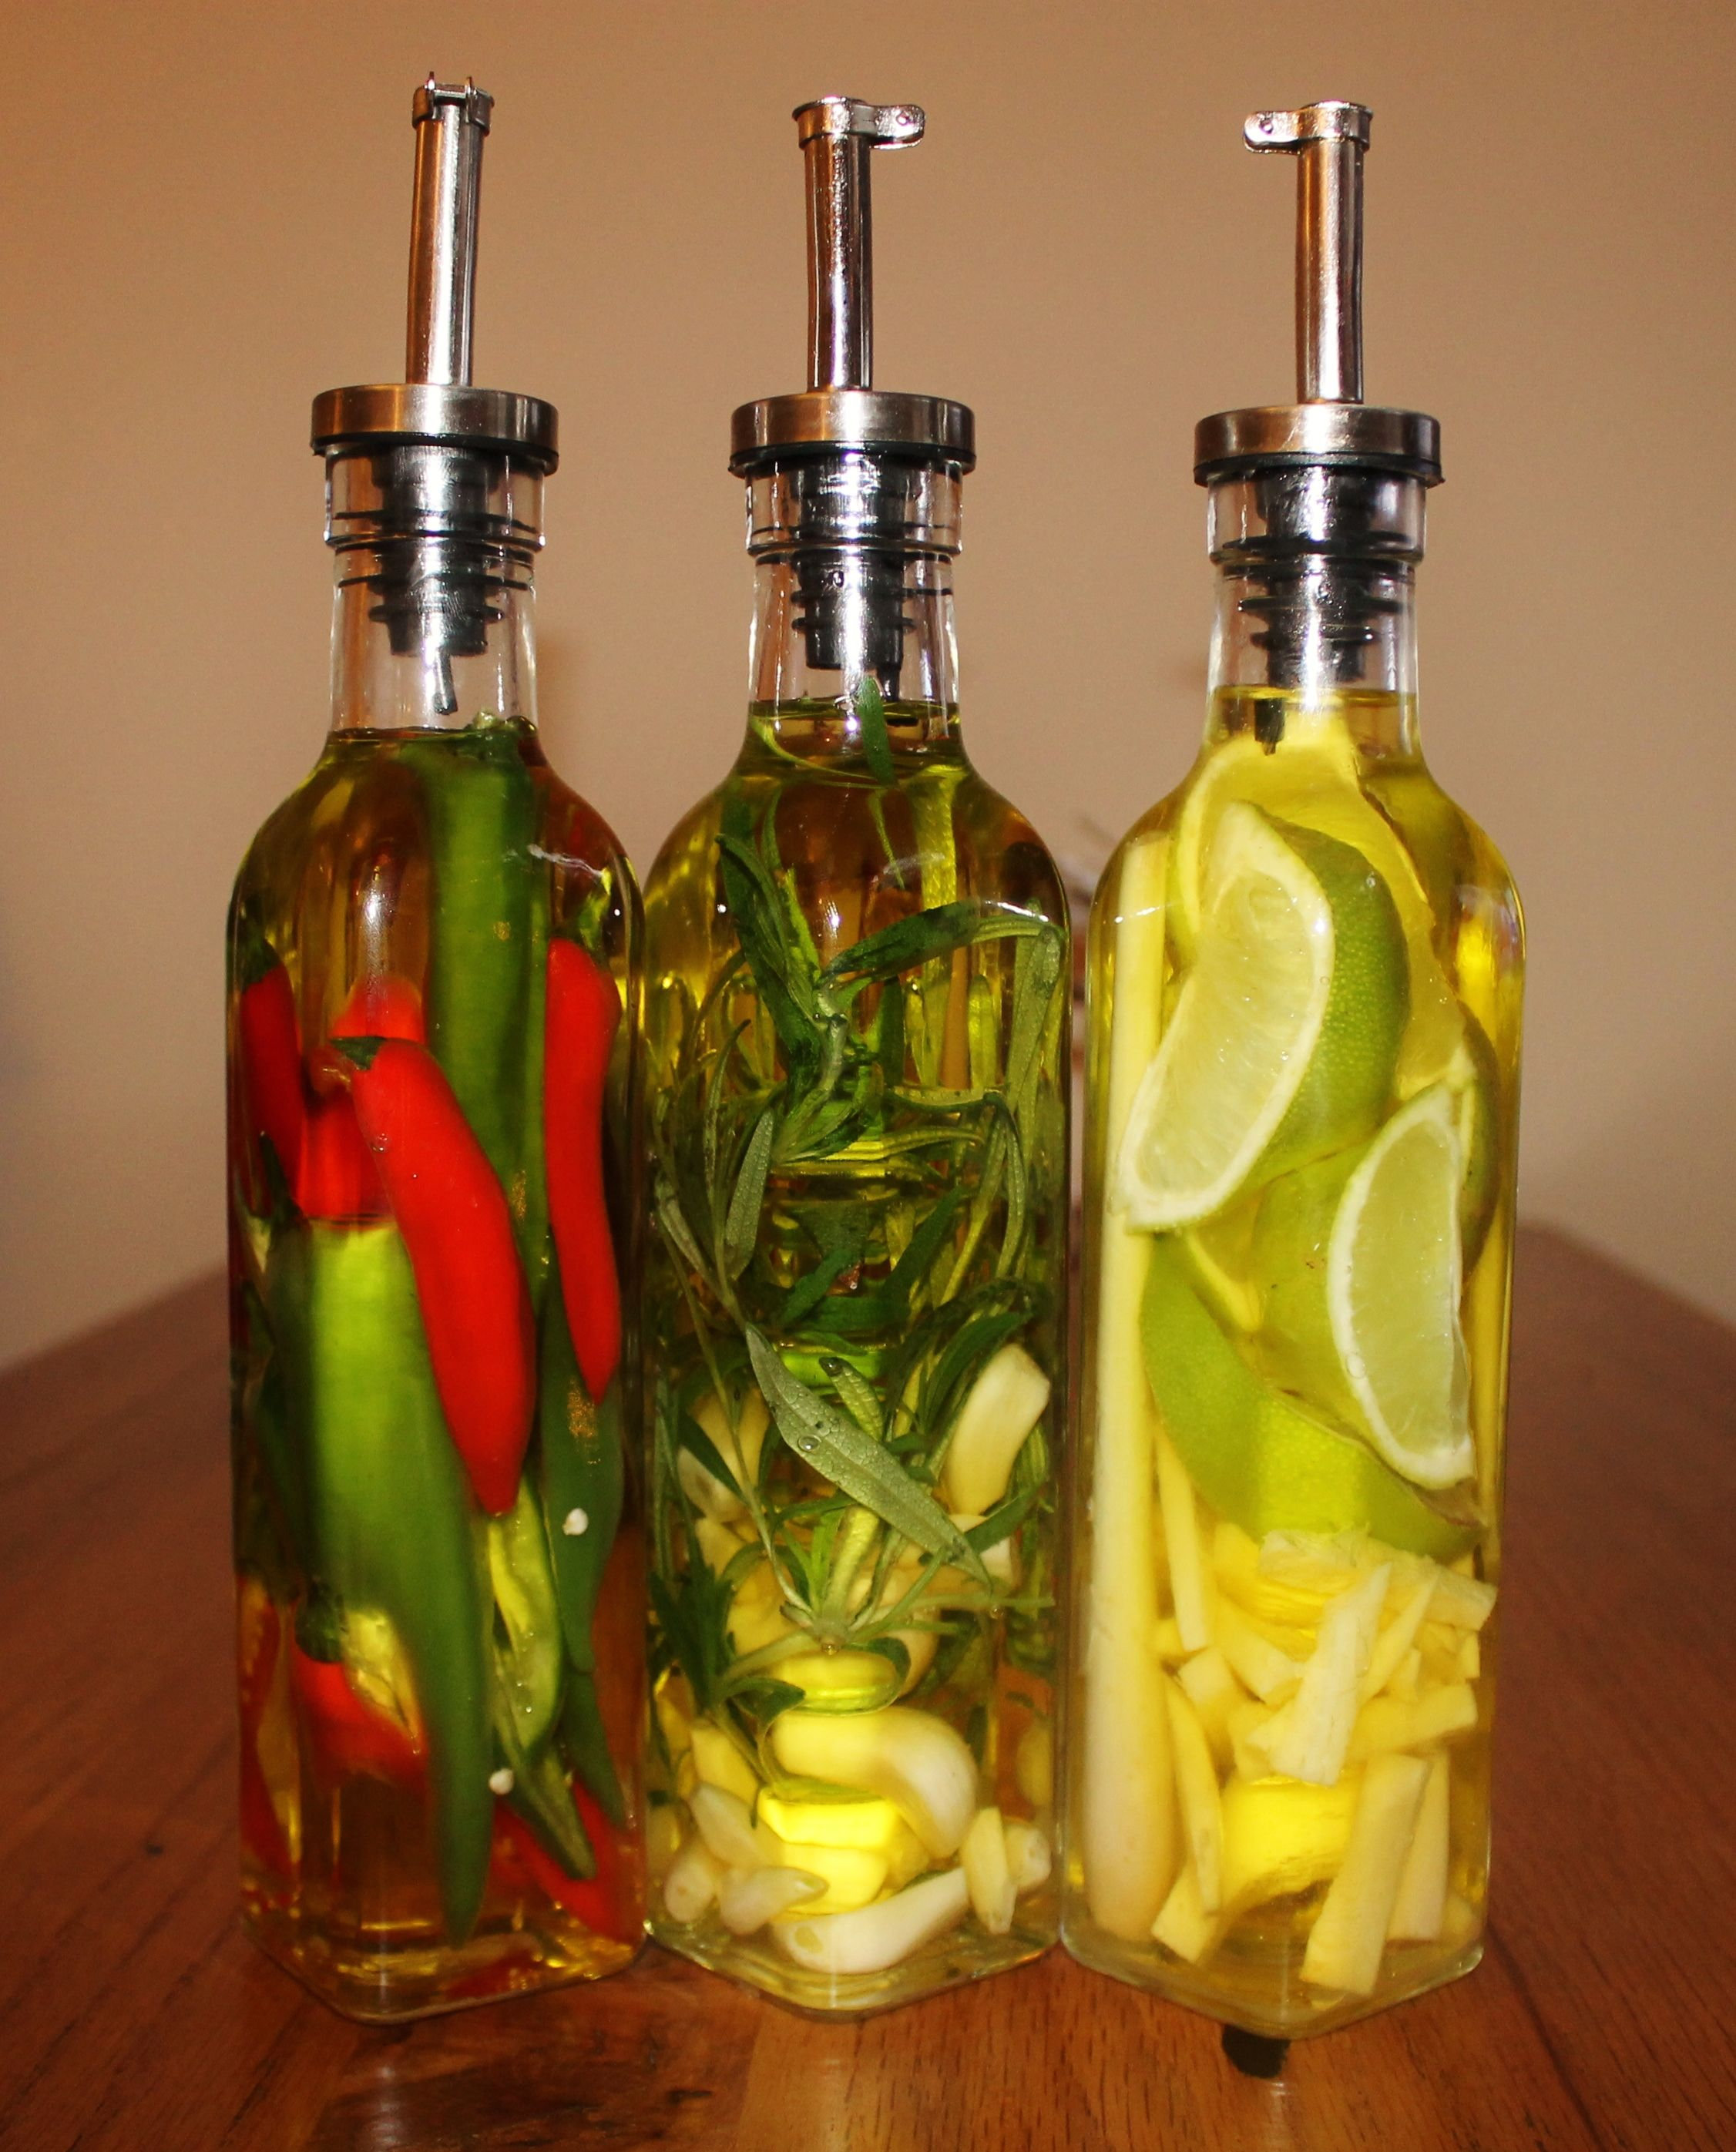 herbed vinegars great kitchen gift idea from homemade goodness